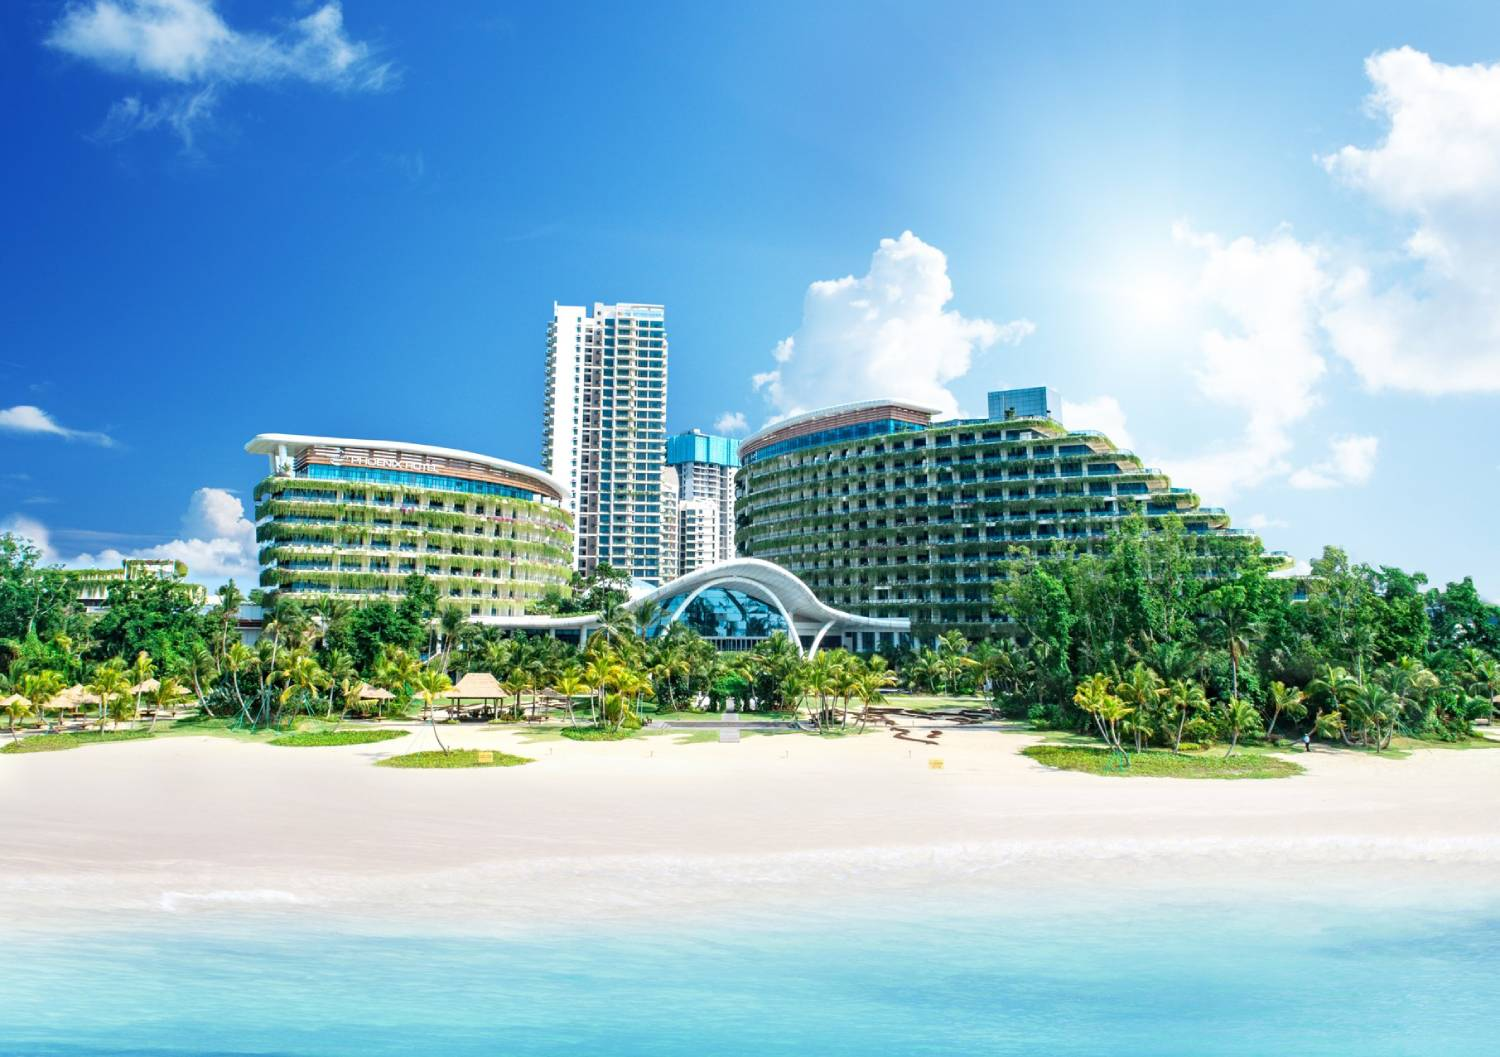 FOREST CITY - The five-star Phoenix International Marina Hotel is part of the first island of Forest City (Credit: Country Garden Pacificview)